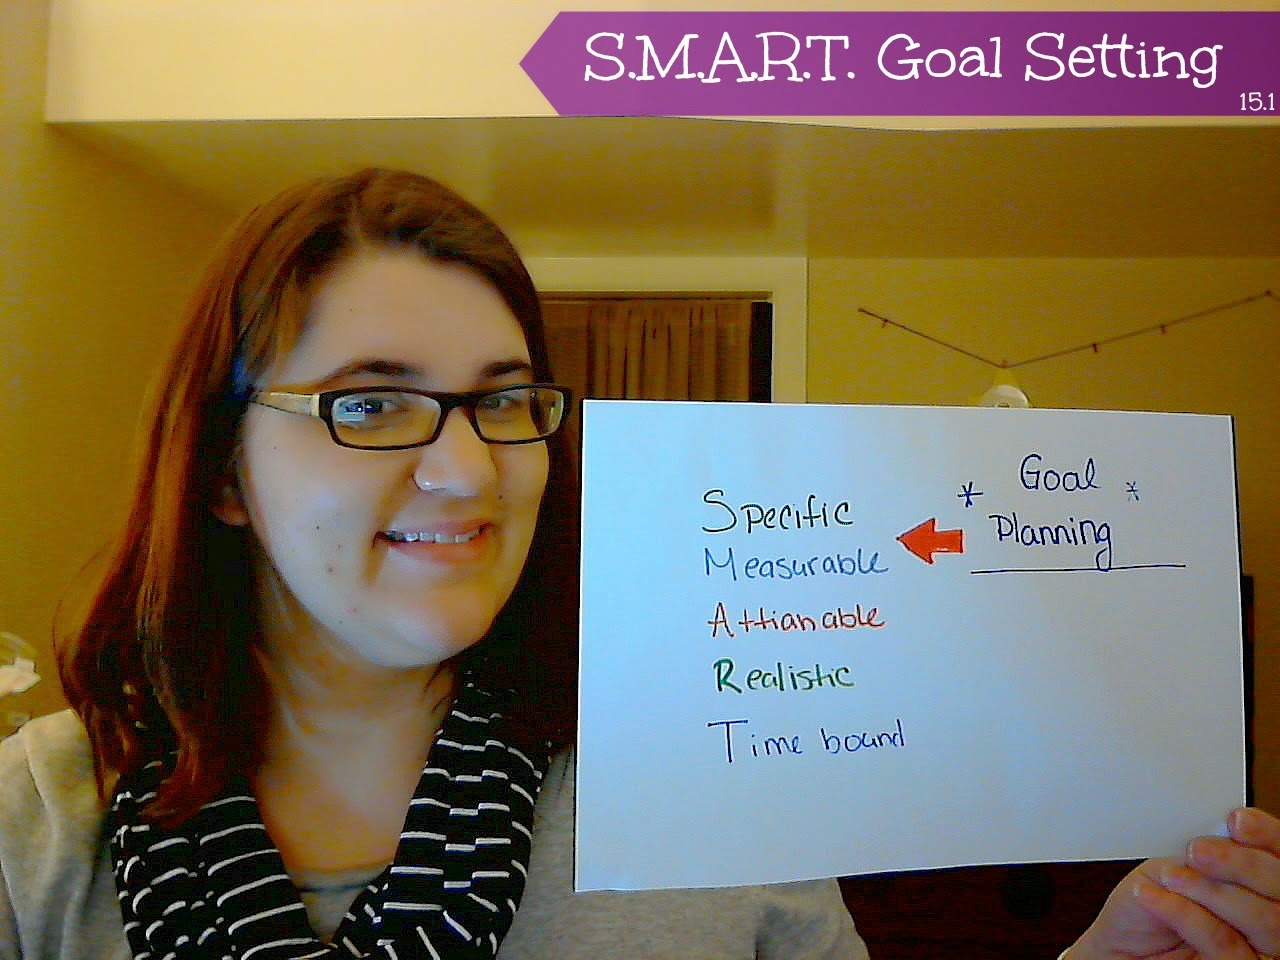 How to set S.M.A.R.T. Goals